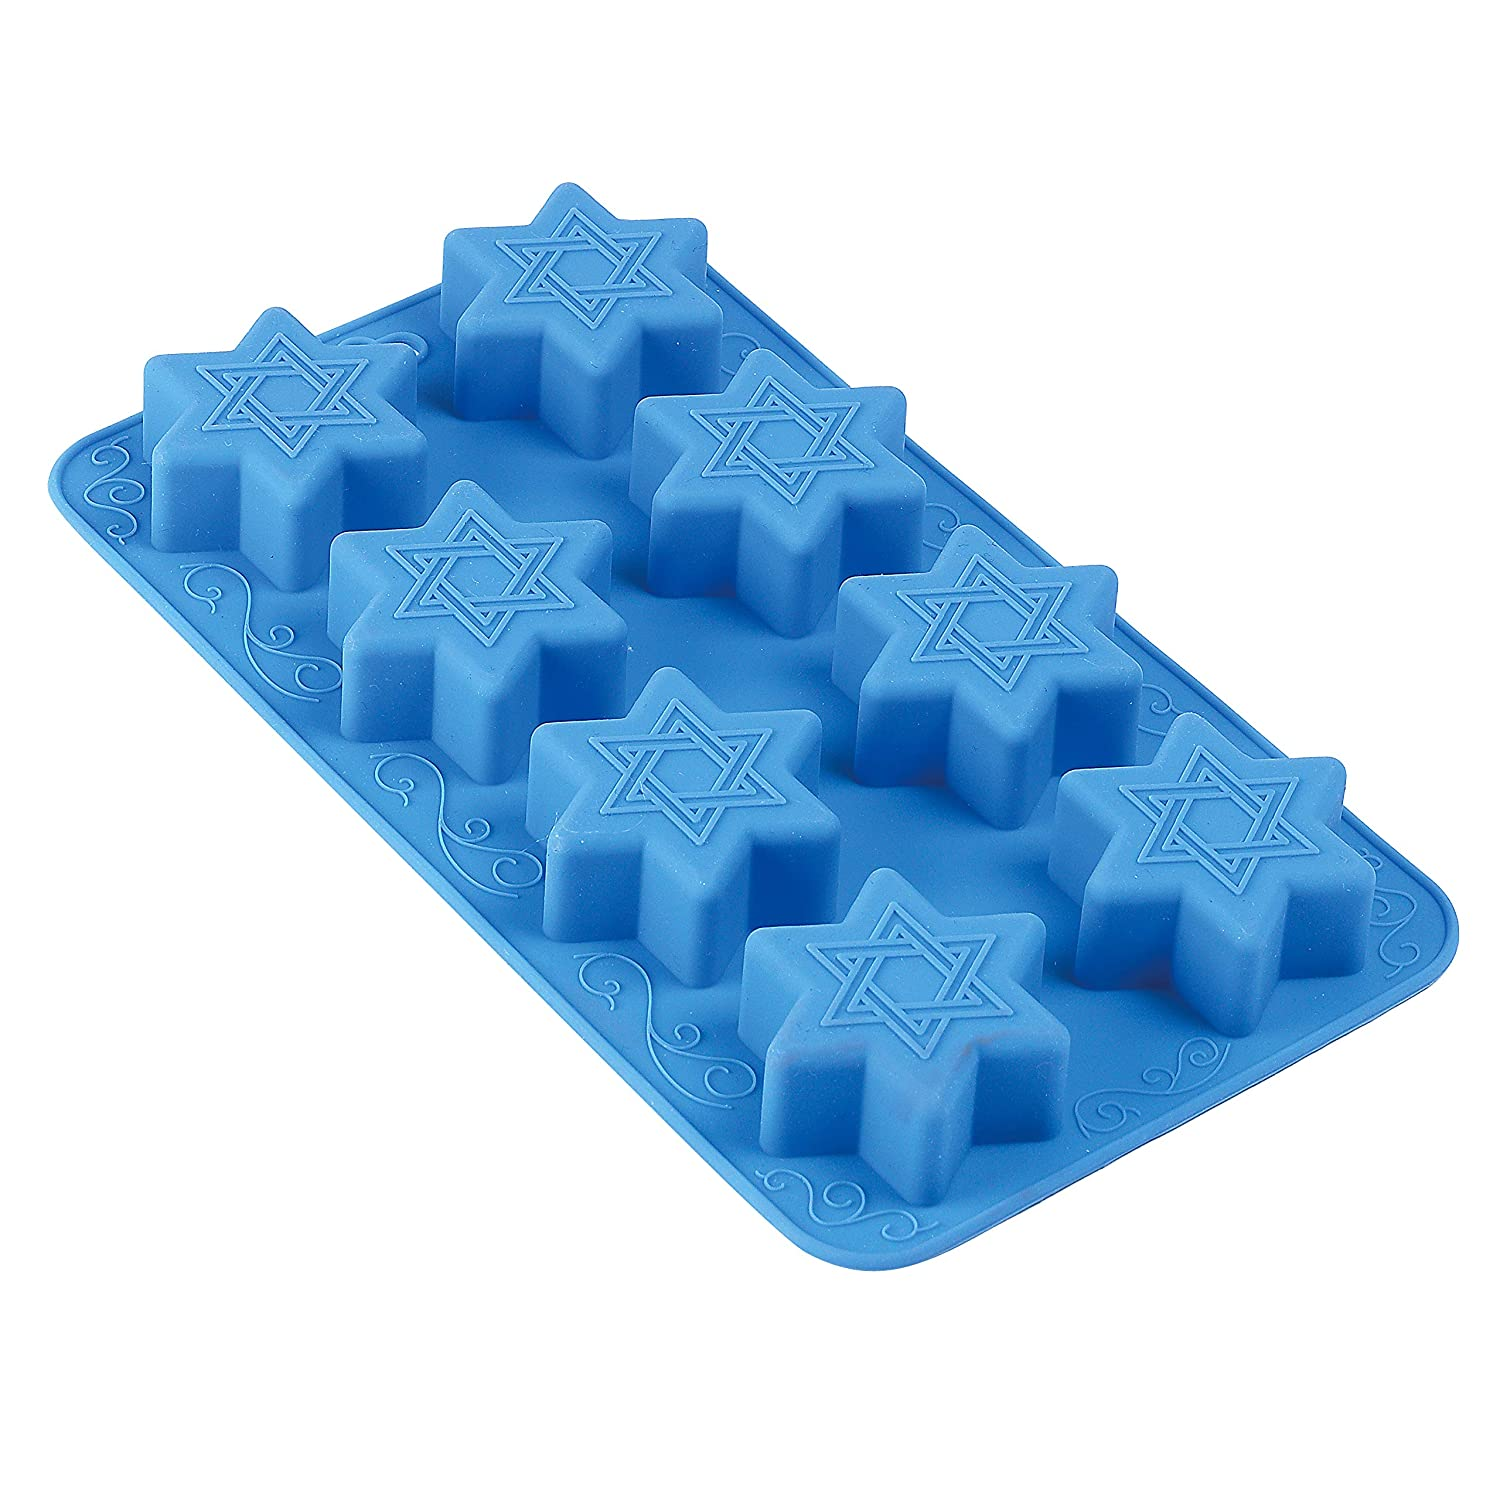 Star of David Silicone Molds - Freeze, Bake and Jel for Candy, Cookie and Ice Cube Magen Dovid Shapes - Oven and Freezer Safe - by The Kosher Cook